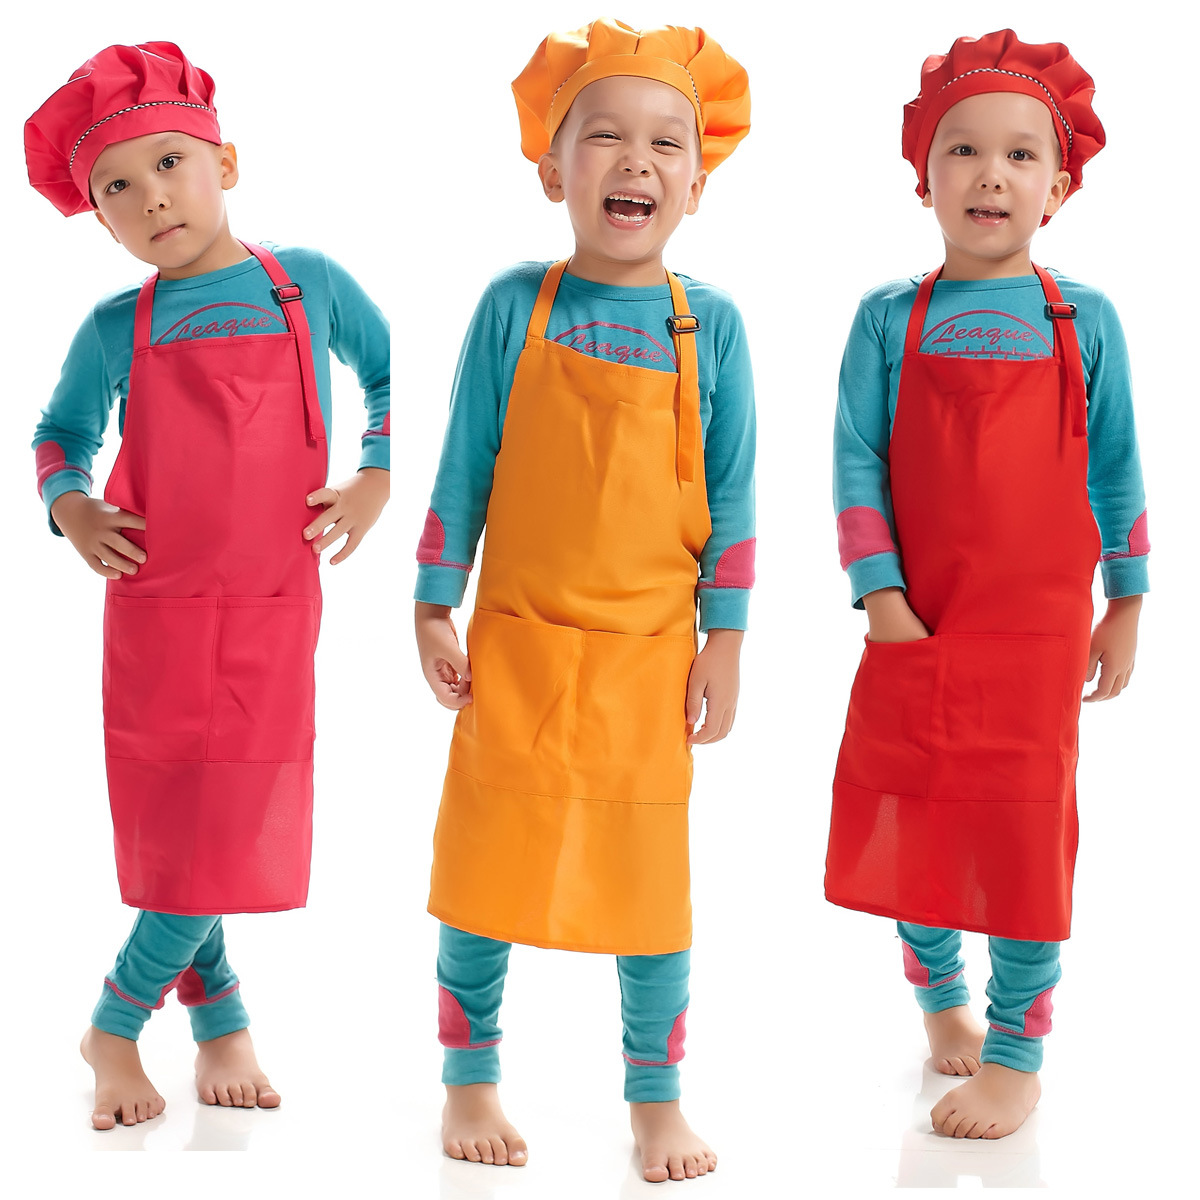 54*50cm Colorful Kids Kitchen Apron Cooking Cleaning Painting Drawing Art  Bib Chef Apron Drop Shipping Bistro Aprons Leather Aprons From Hongheyu, ...